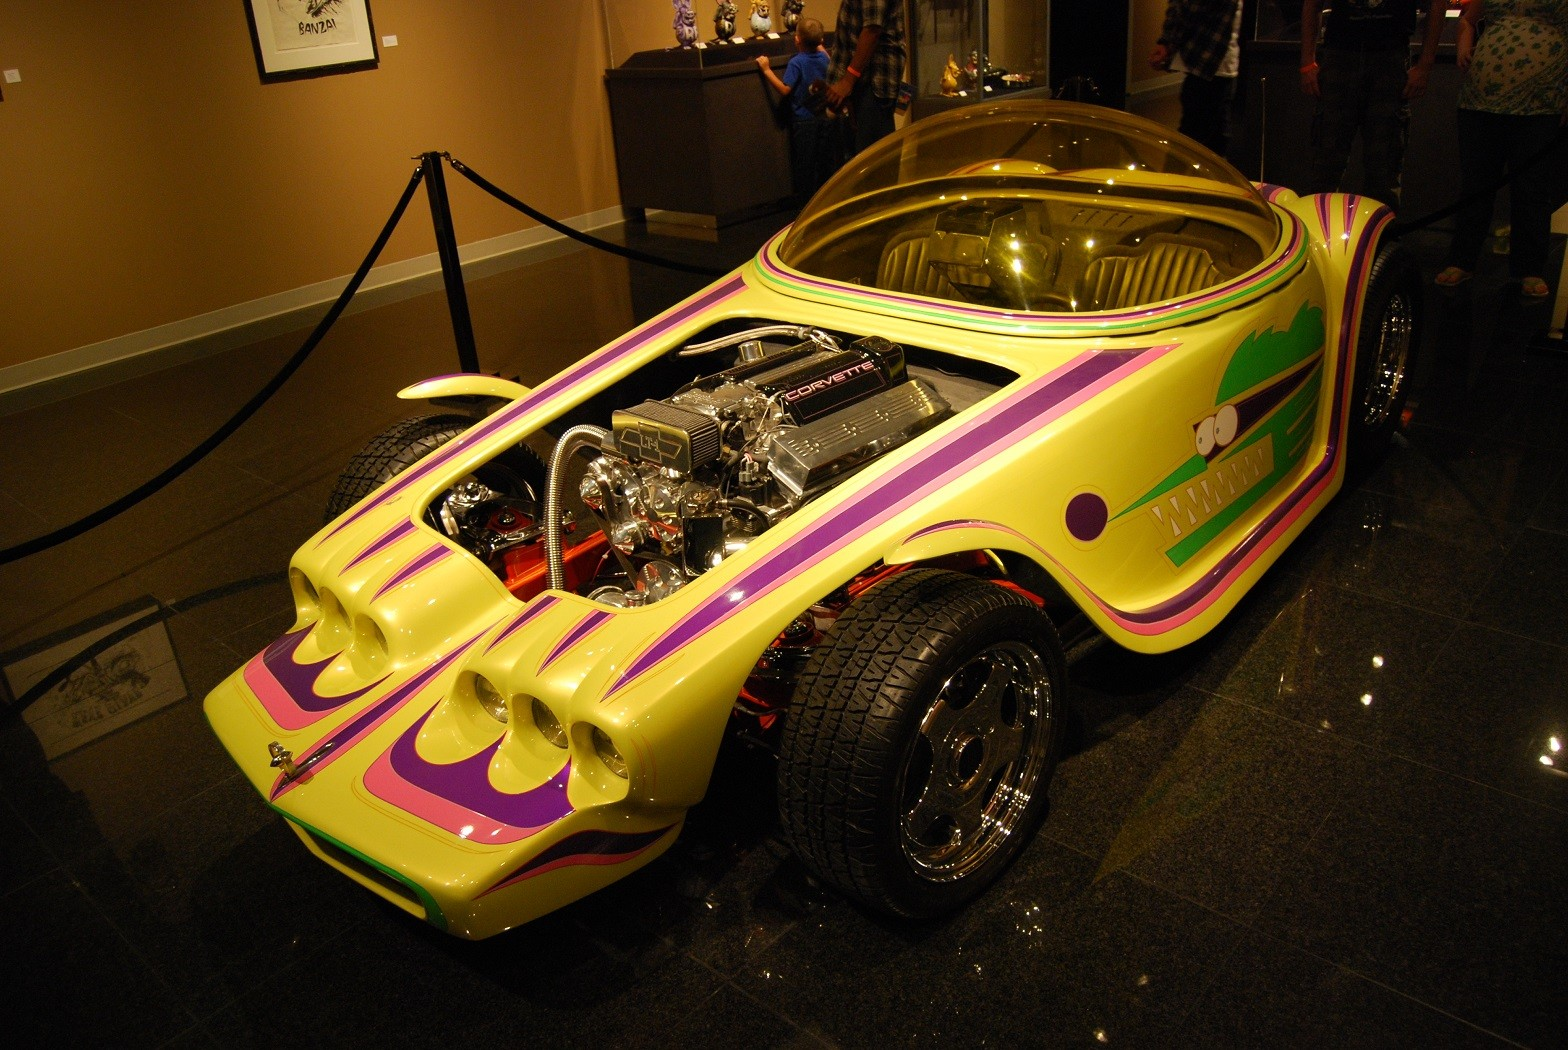 Ed Roth The Car Customization King Of The 1960s Autoevolution